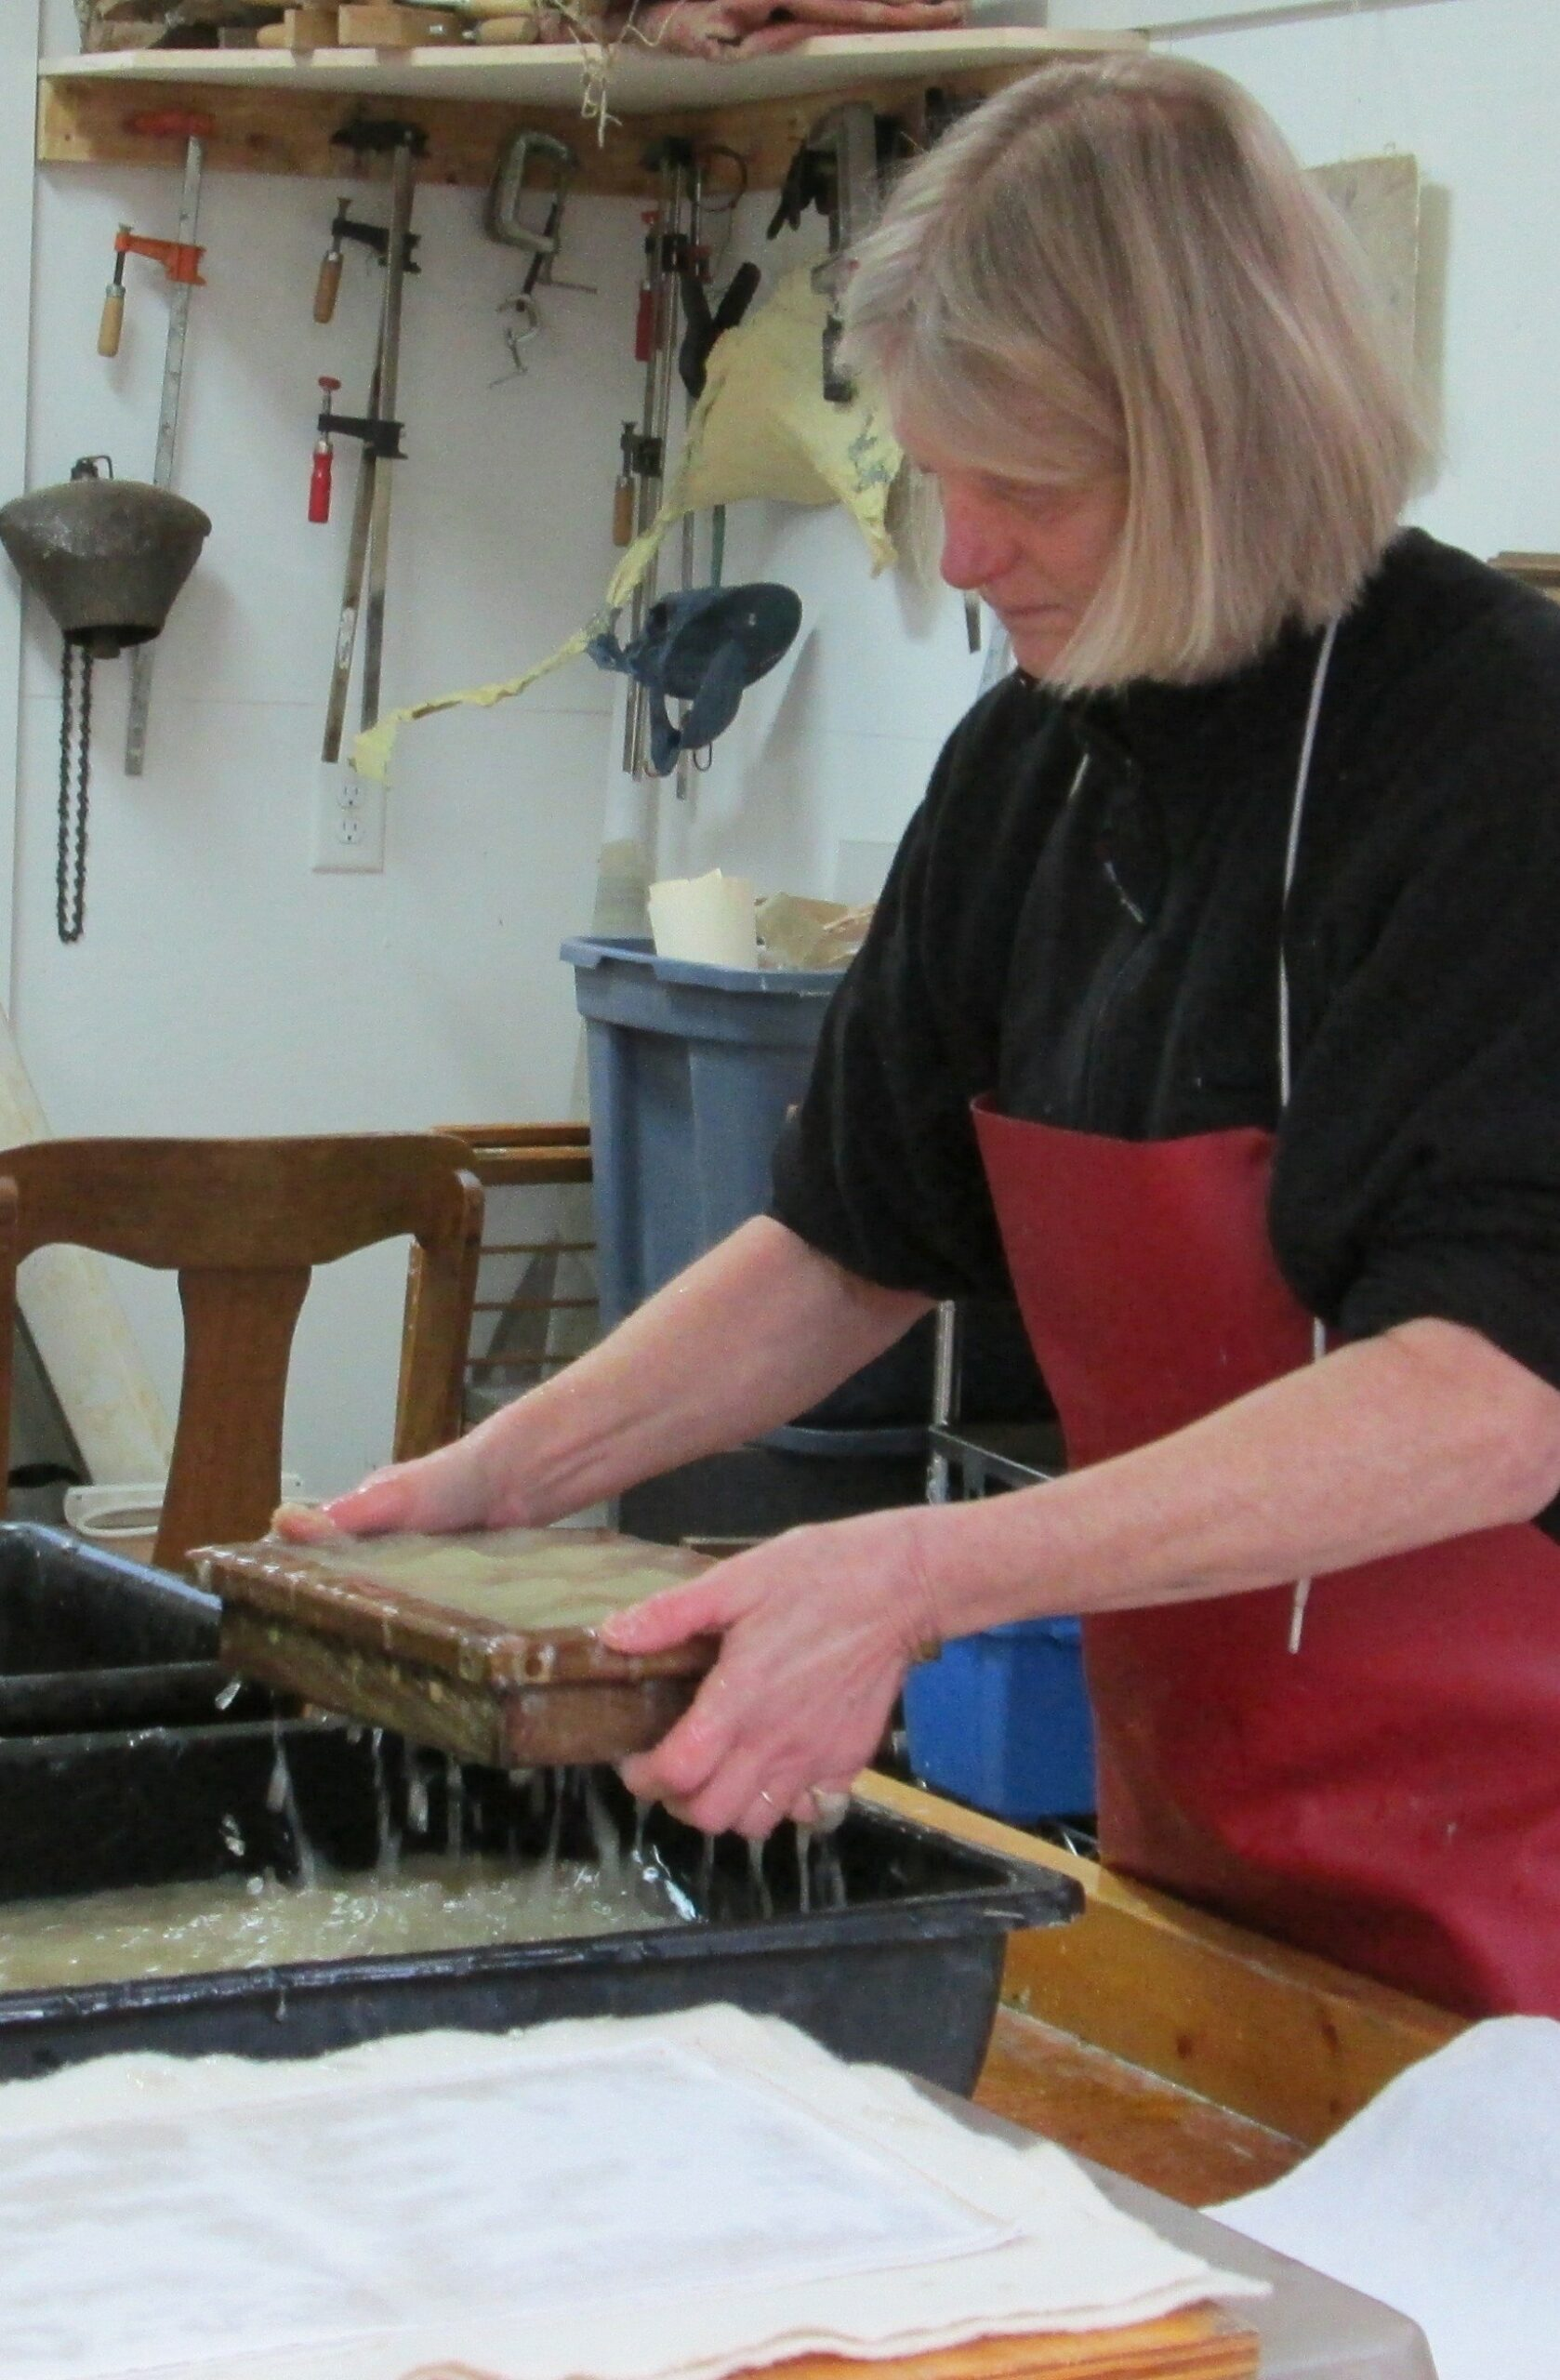 An artist wearing an apron stands at a table and is lifting a block of wood out of a murky liquid